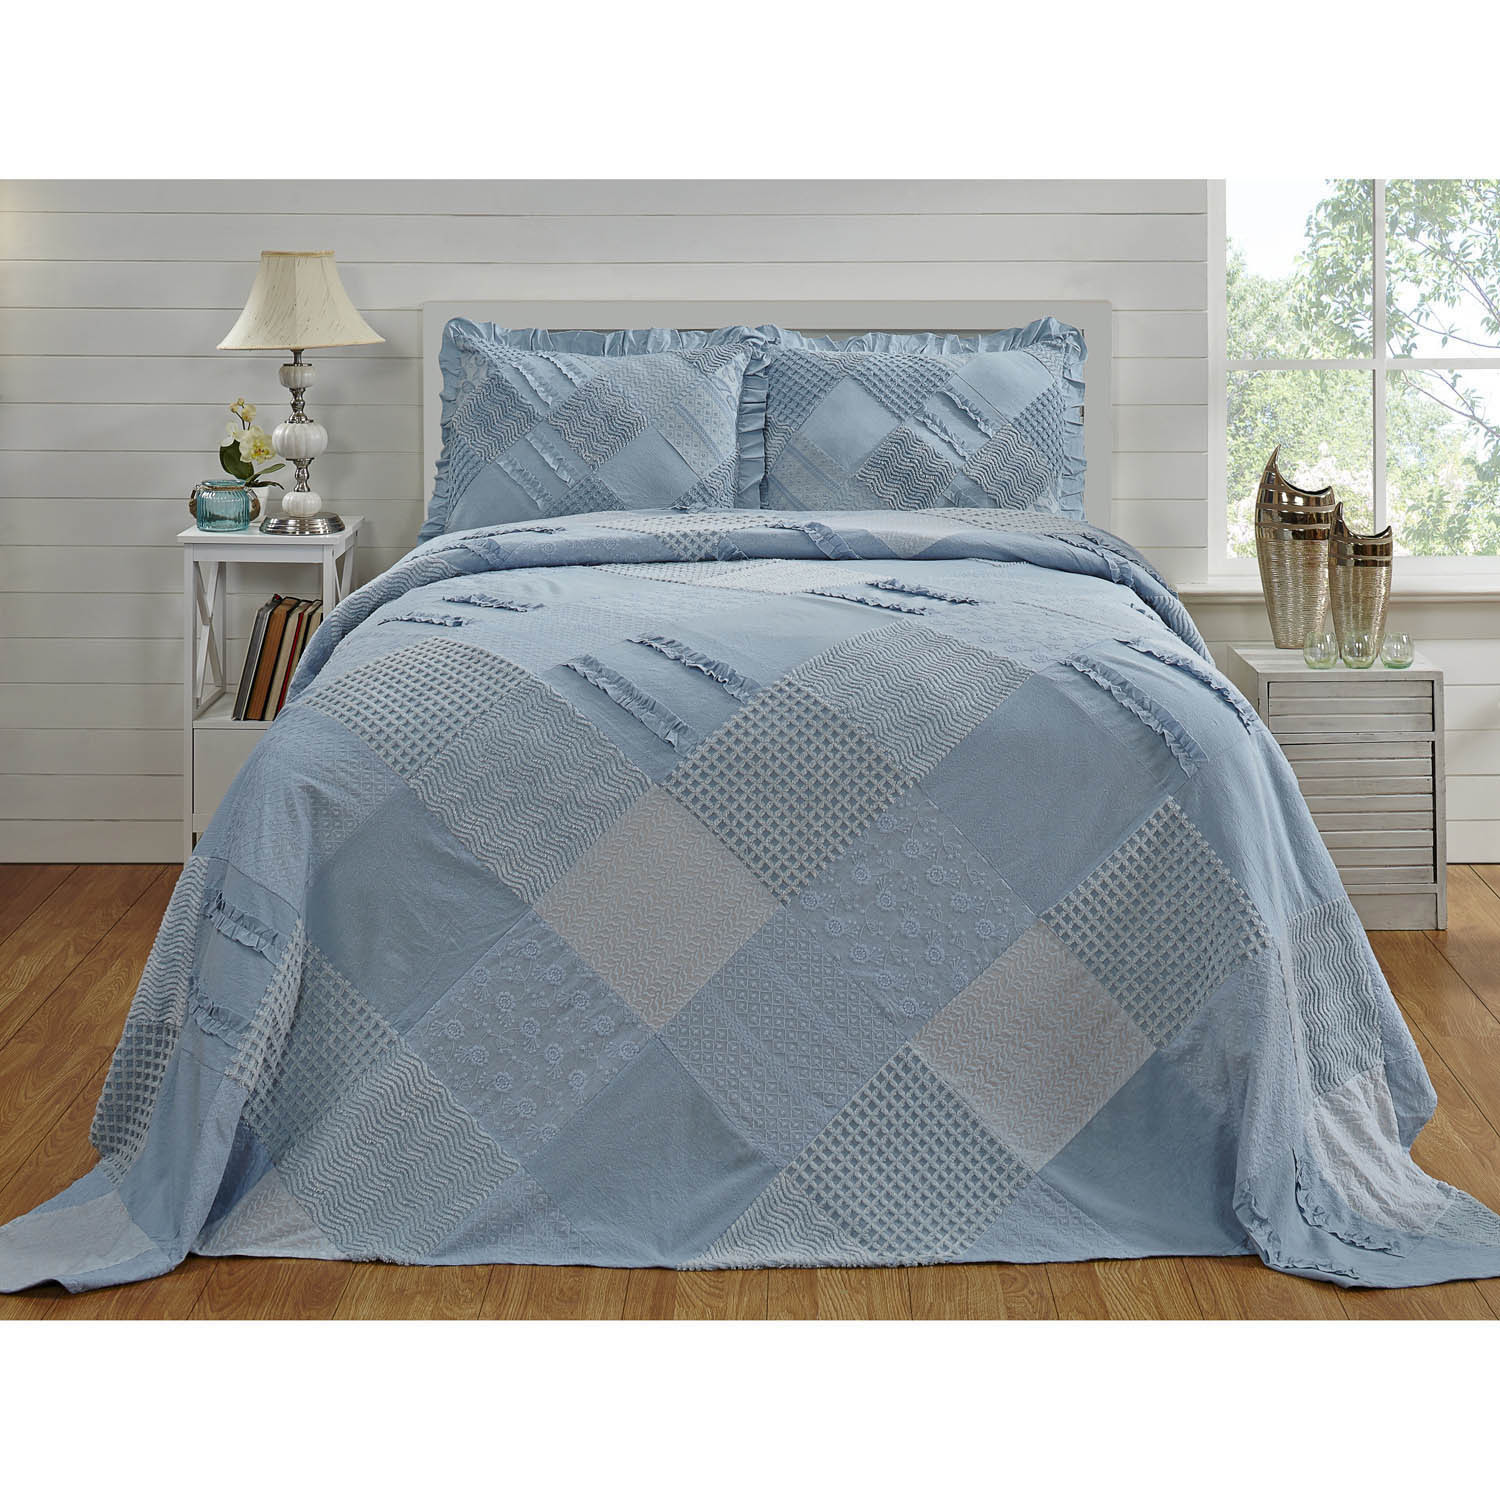 Chenille Ruffled Bedspread by Better Trends (Blue - Queen)